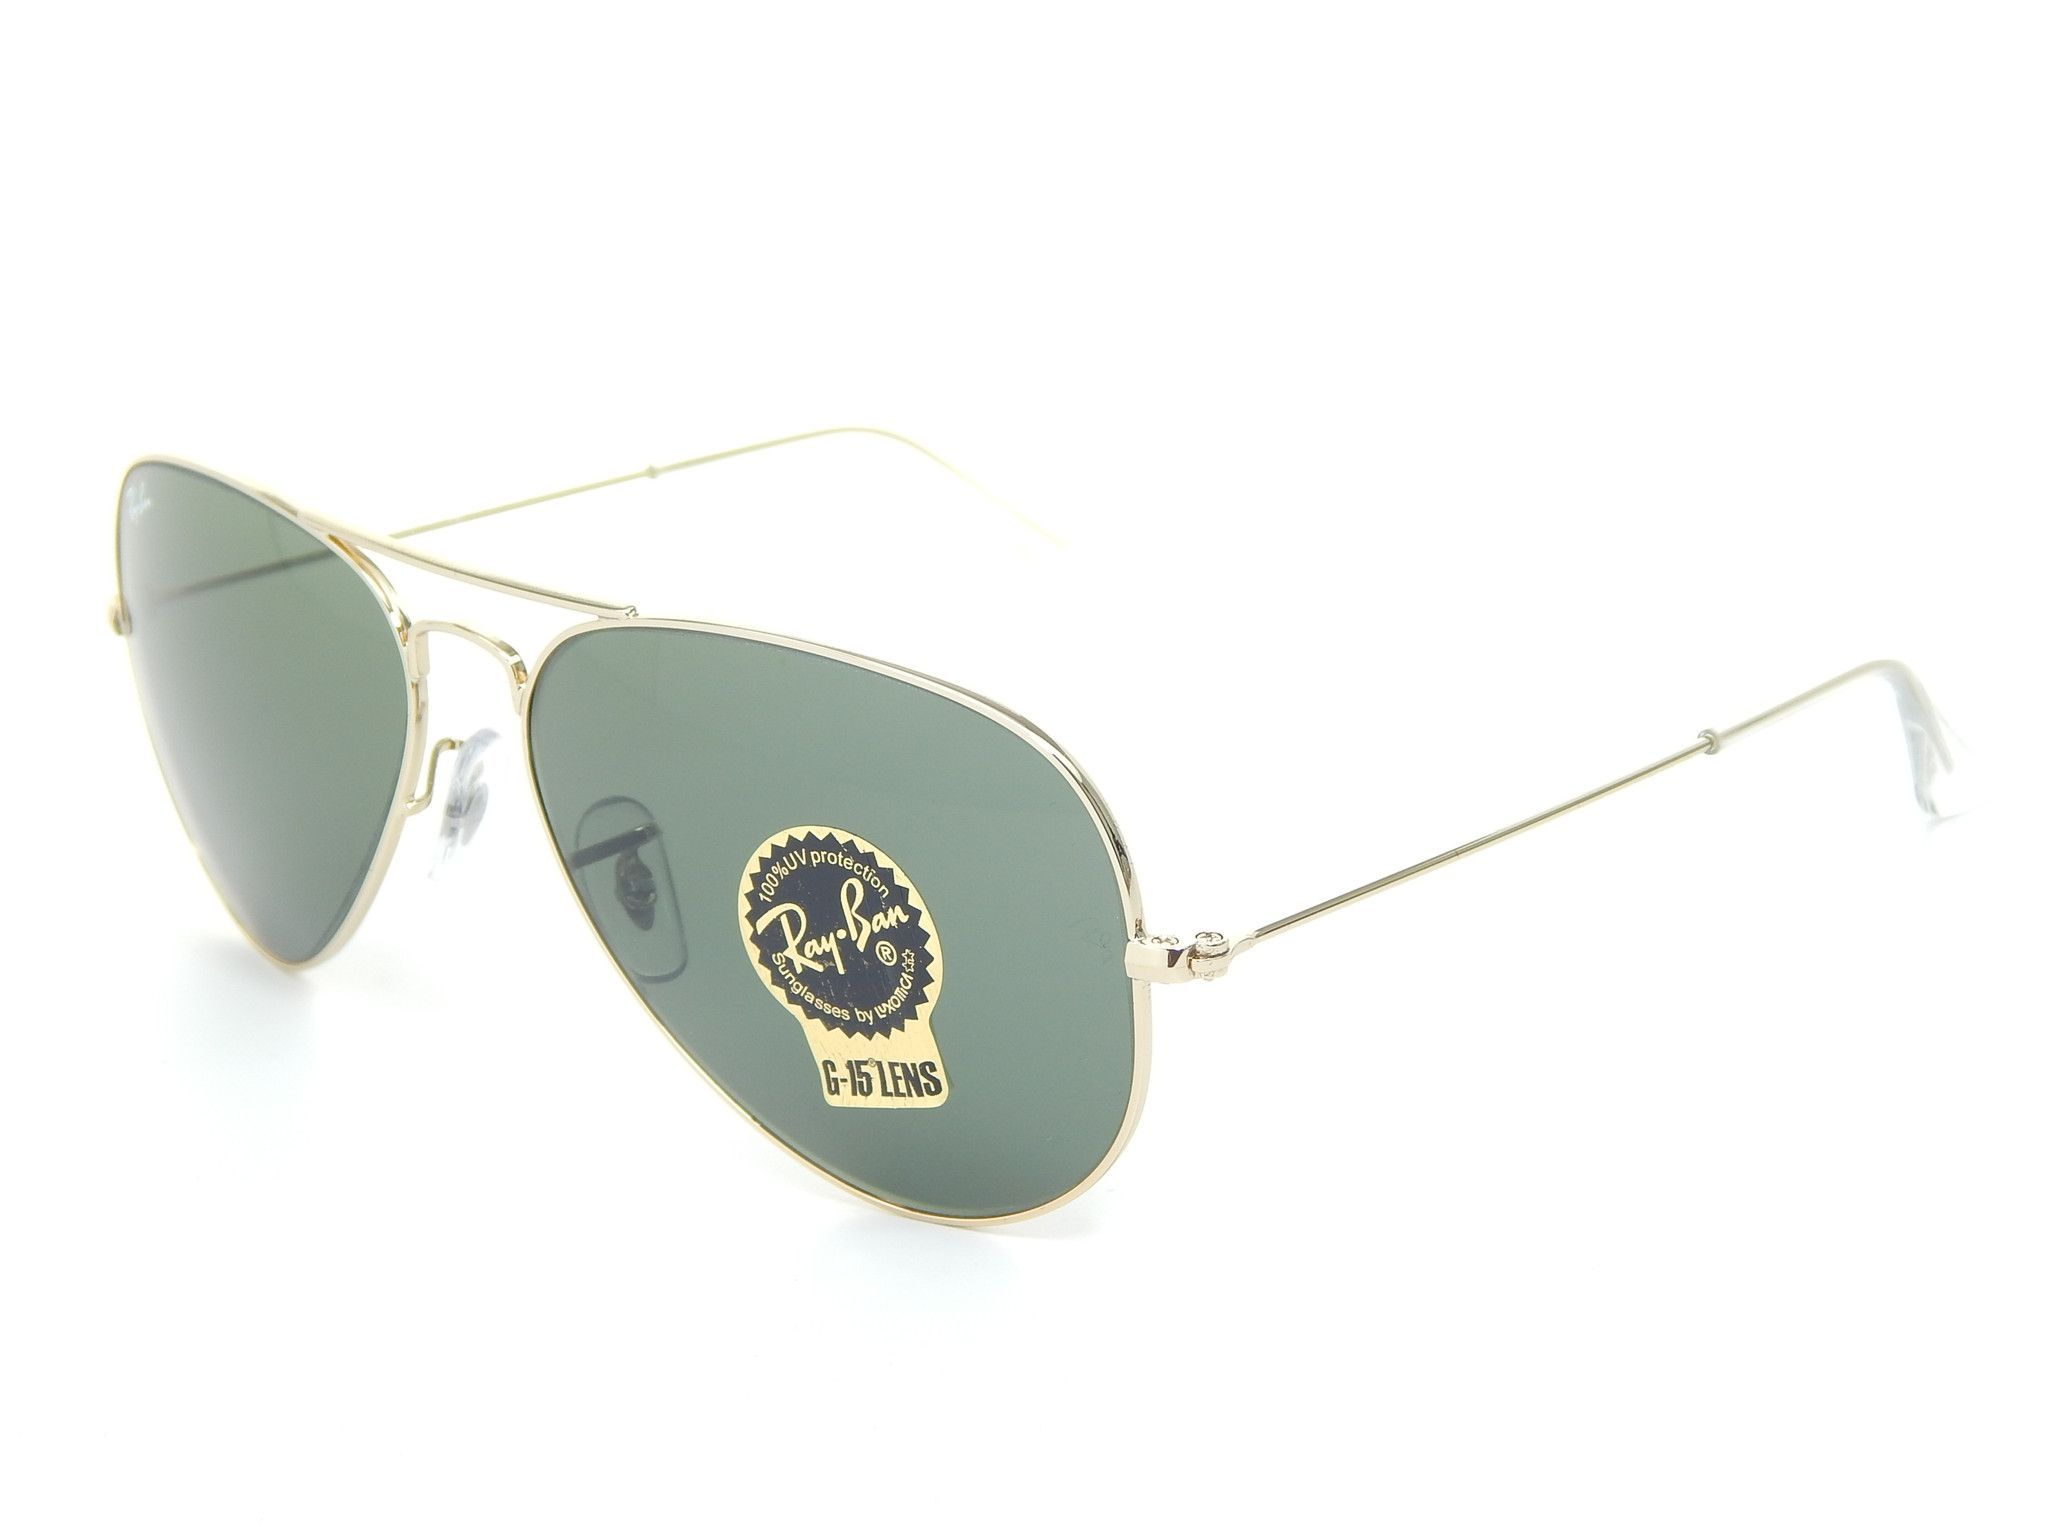 2015 ray ban aviator l0205 sonnenbrille